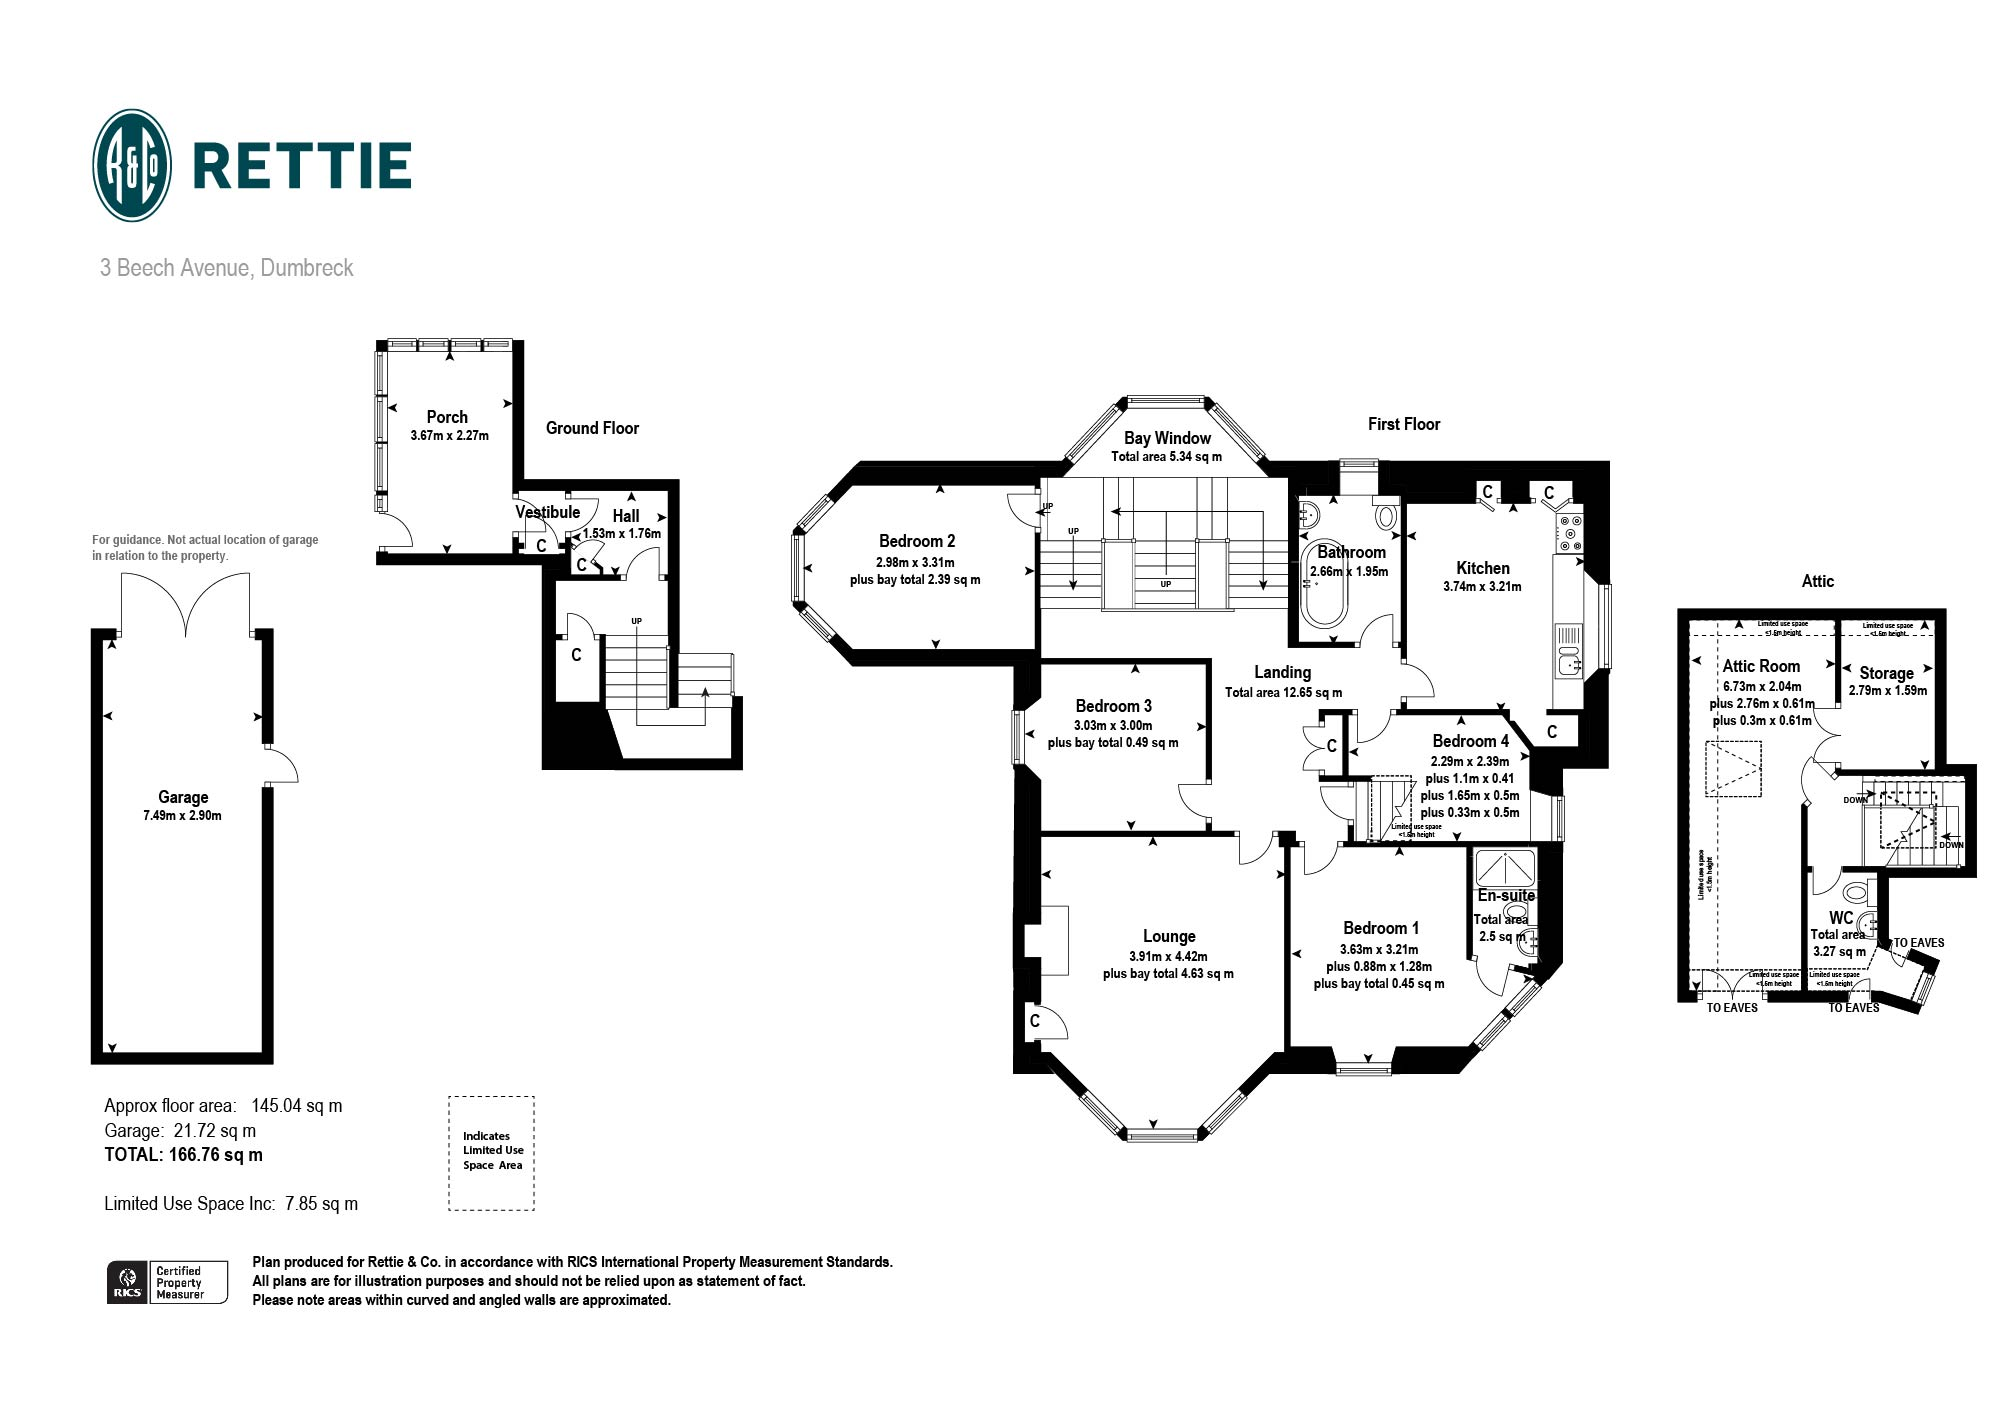 Floorplans for Beech Avenue, Dumbreck, Glasgow, G41